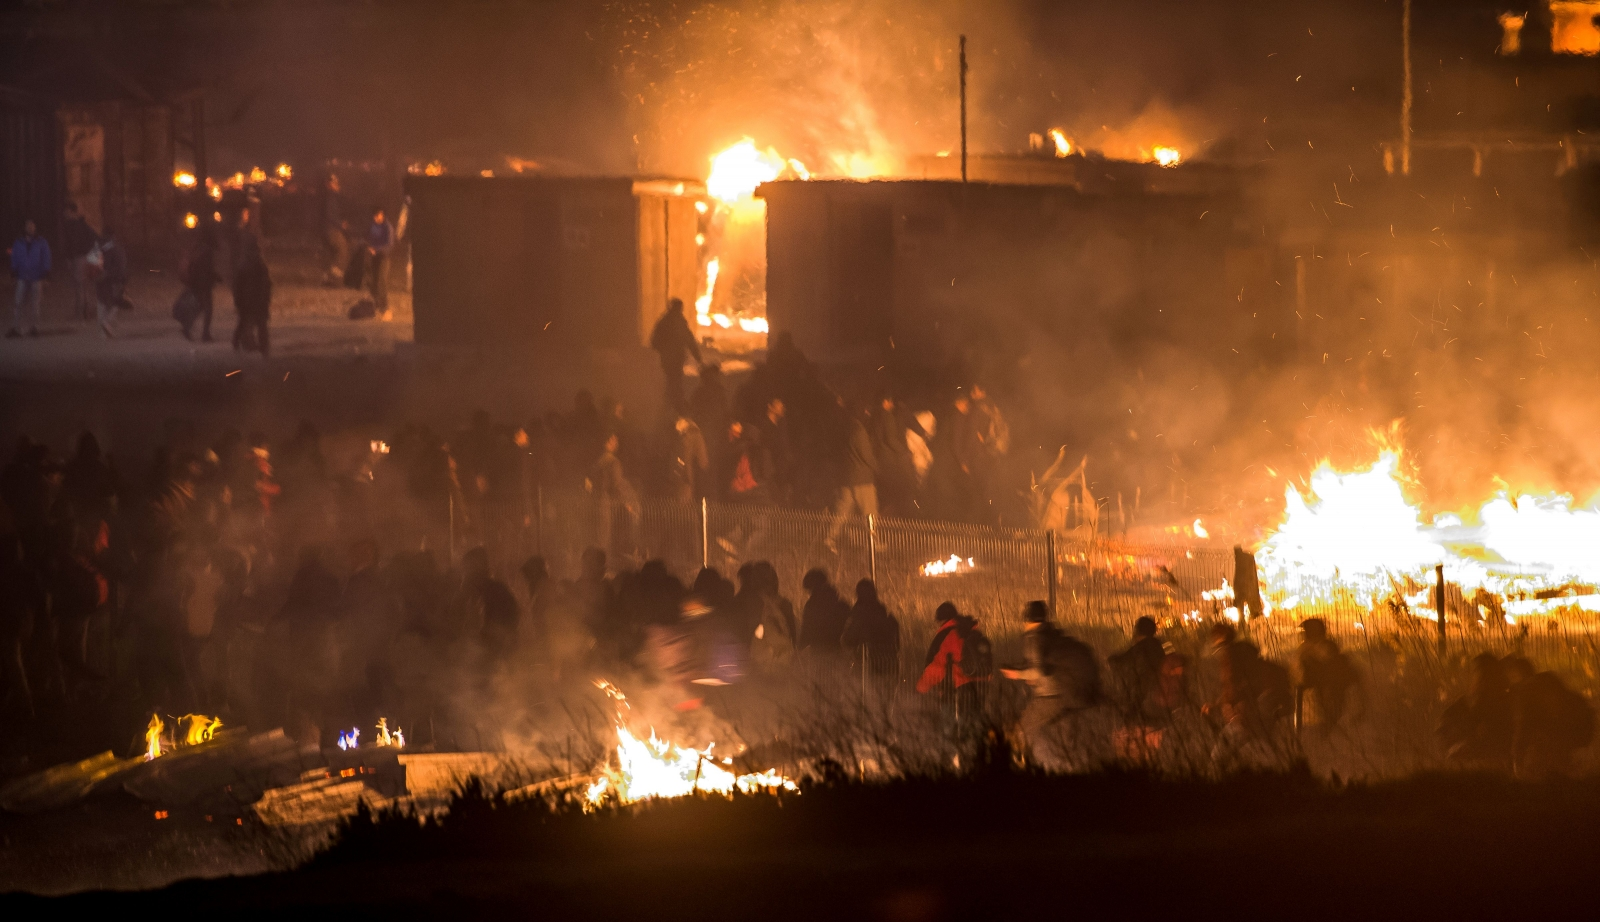 Grande-Synthe migrant camp fire